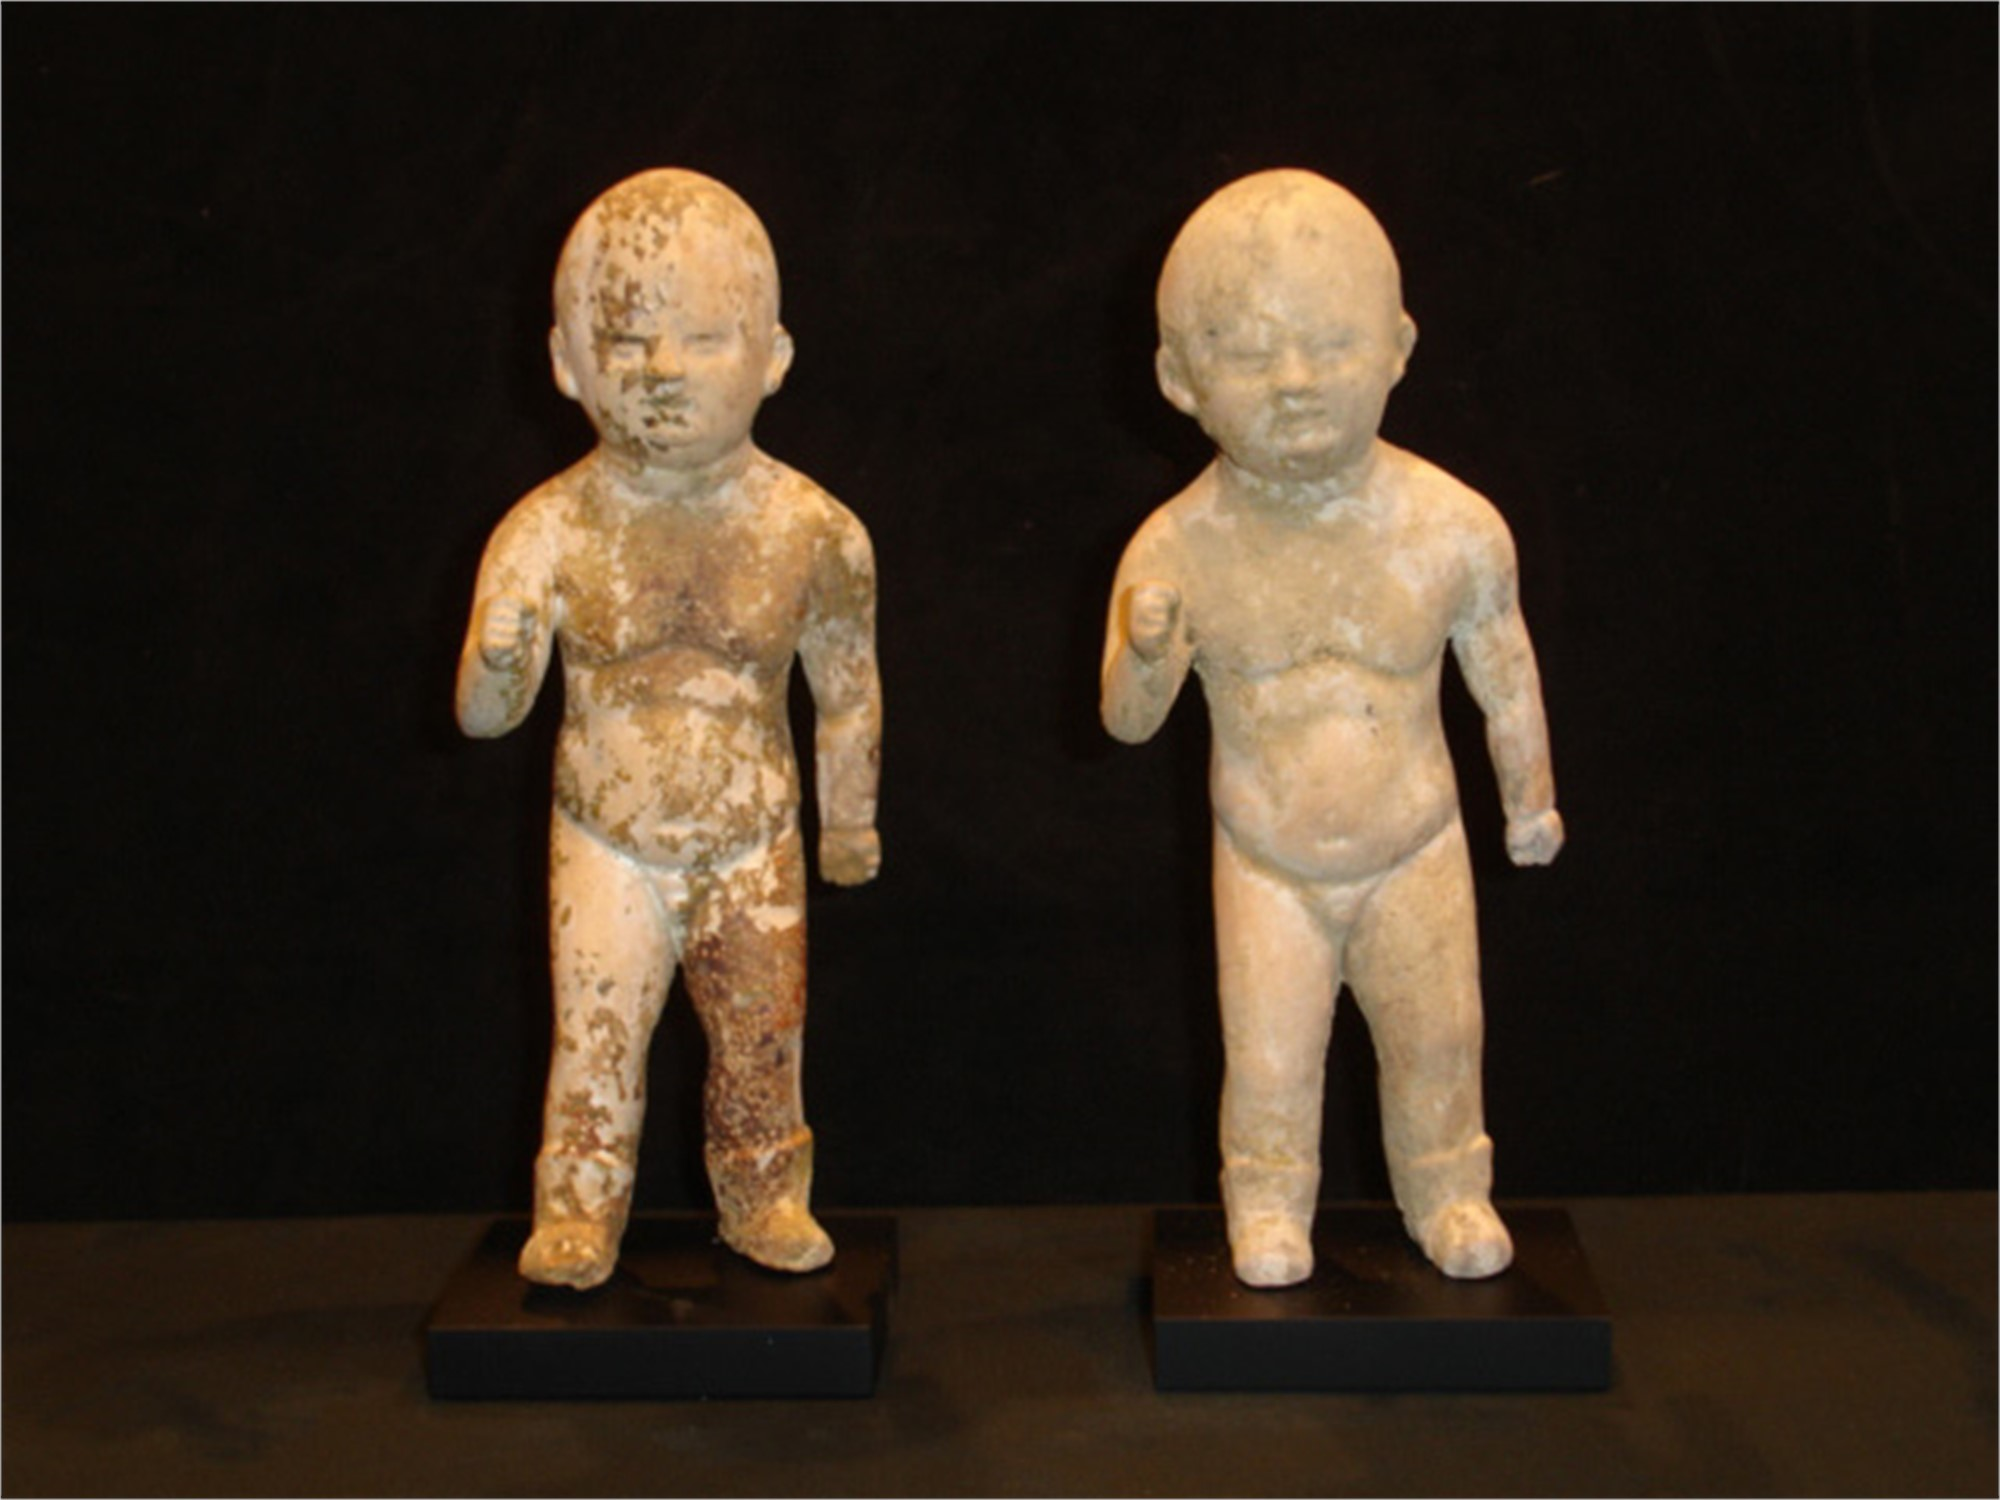 TWO SMALL PAINTED POTTERY FIGURES OF CHILDREN